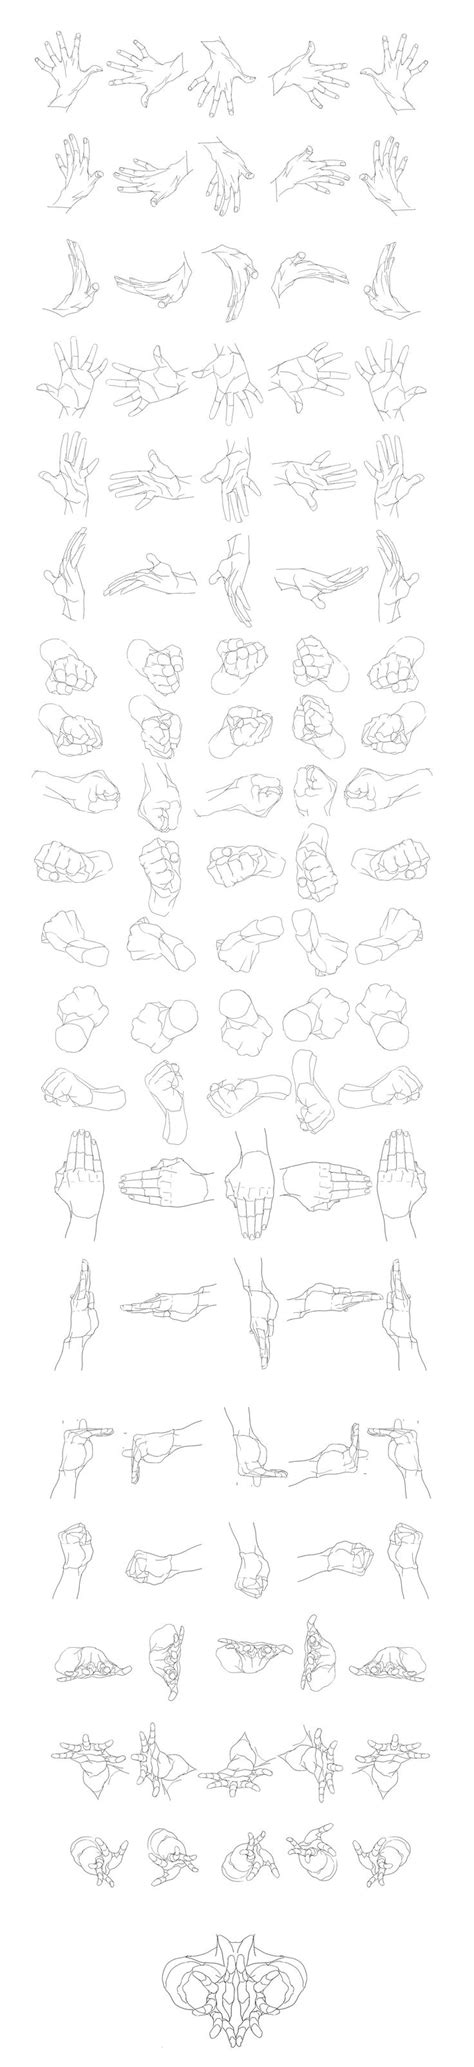 rotate pattern sketch best 25 drawing reference ideas on pinterest drawing